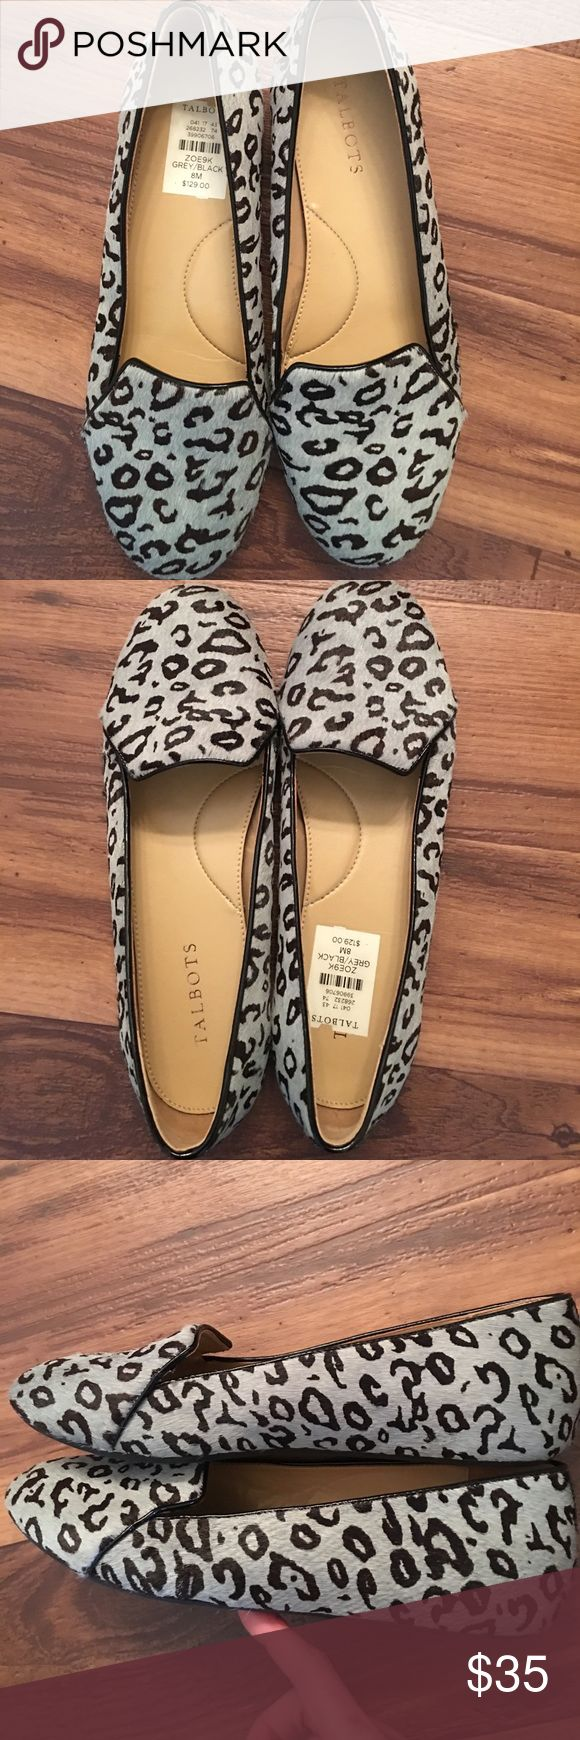 Talbots leather leopard print loafers These cute loafers are perfect with jeans or dress pants! Leather and calf hair upper. Grey and black. Talbots Shoes